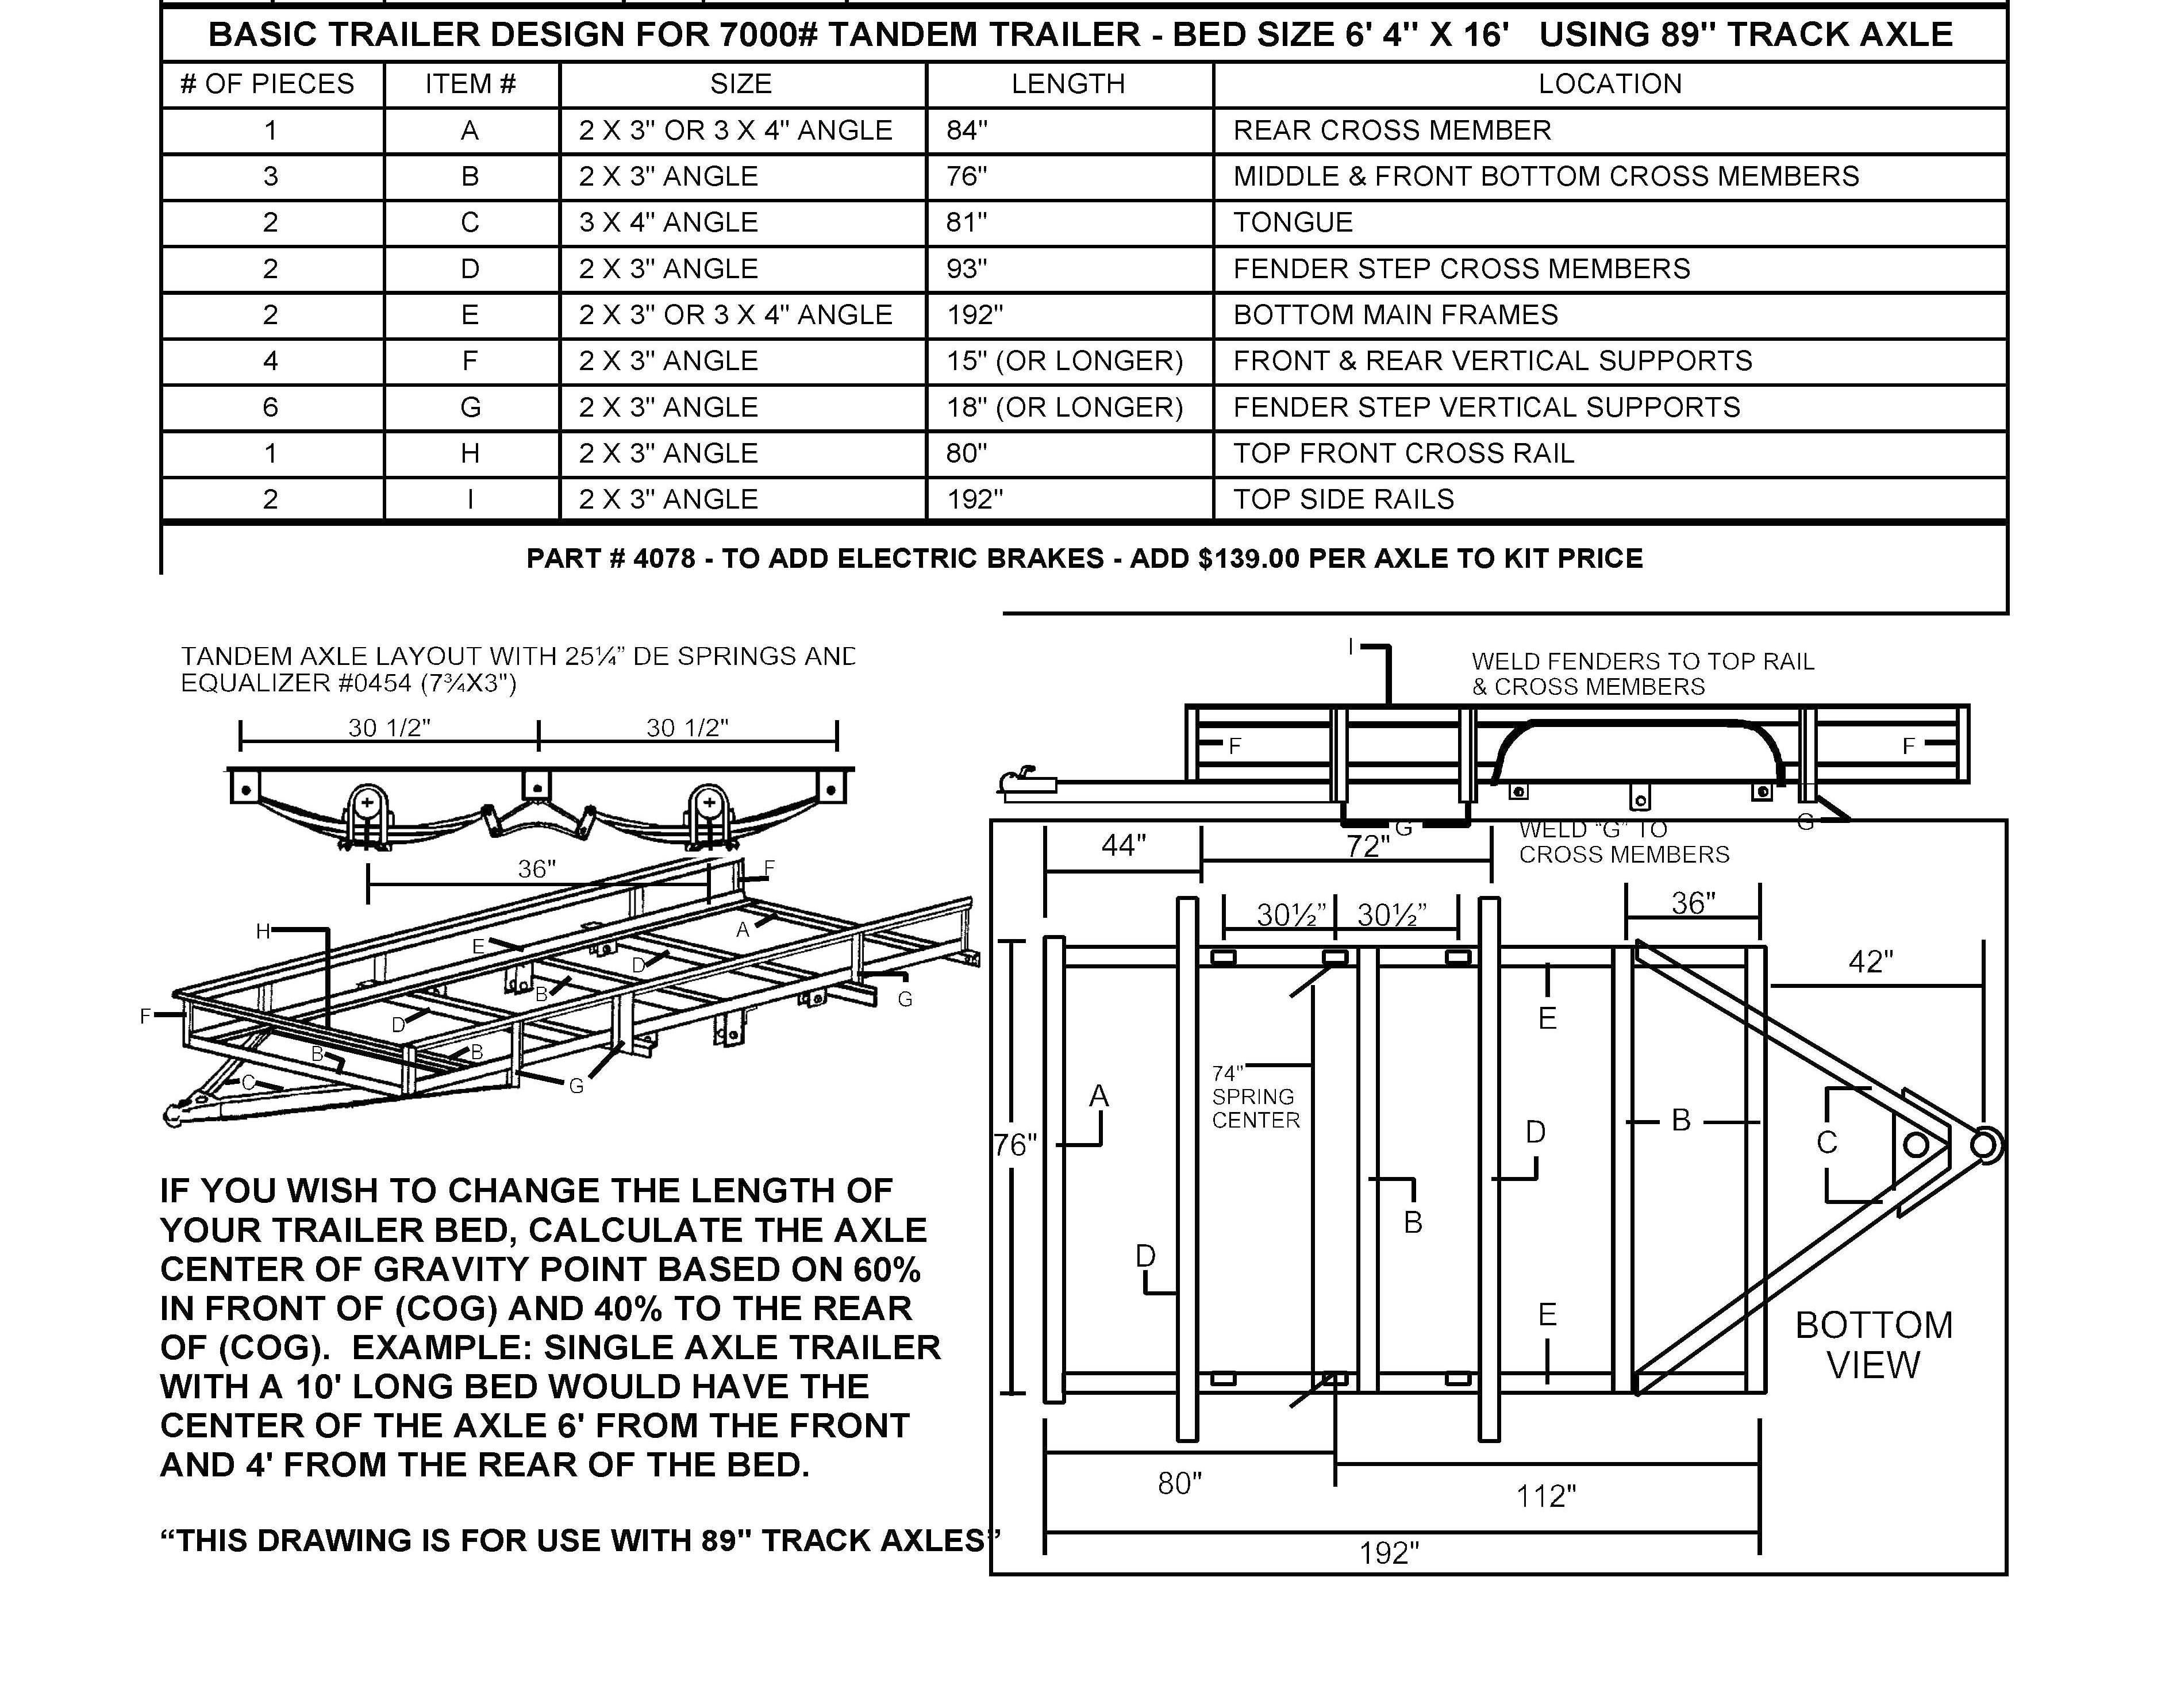 95 tandem trailer parts kit